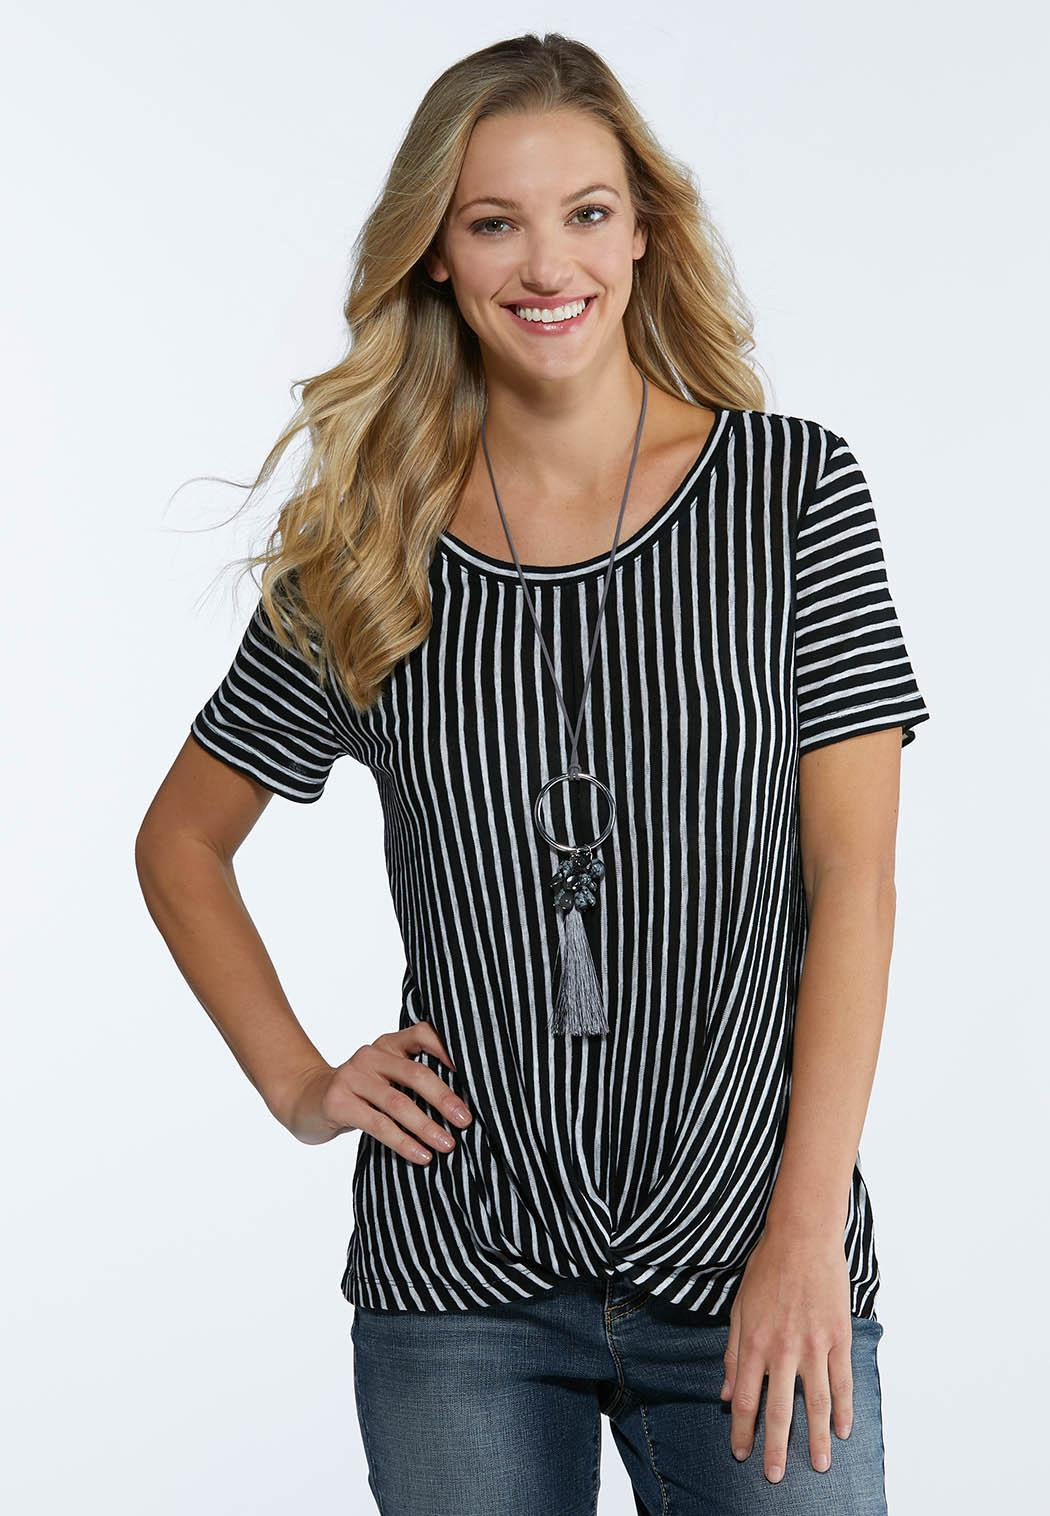 061b024834453 Plus Size Stripe Twisted Top Tees   Knit Tops Cato Fashions